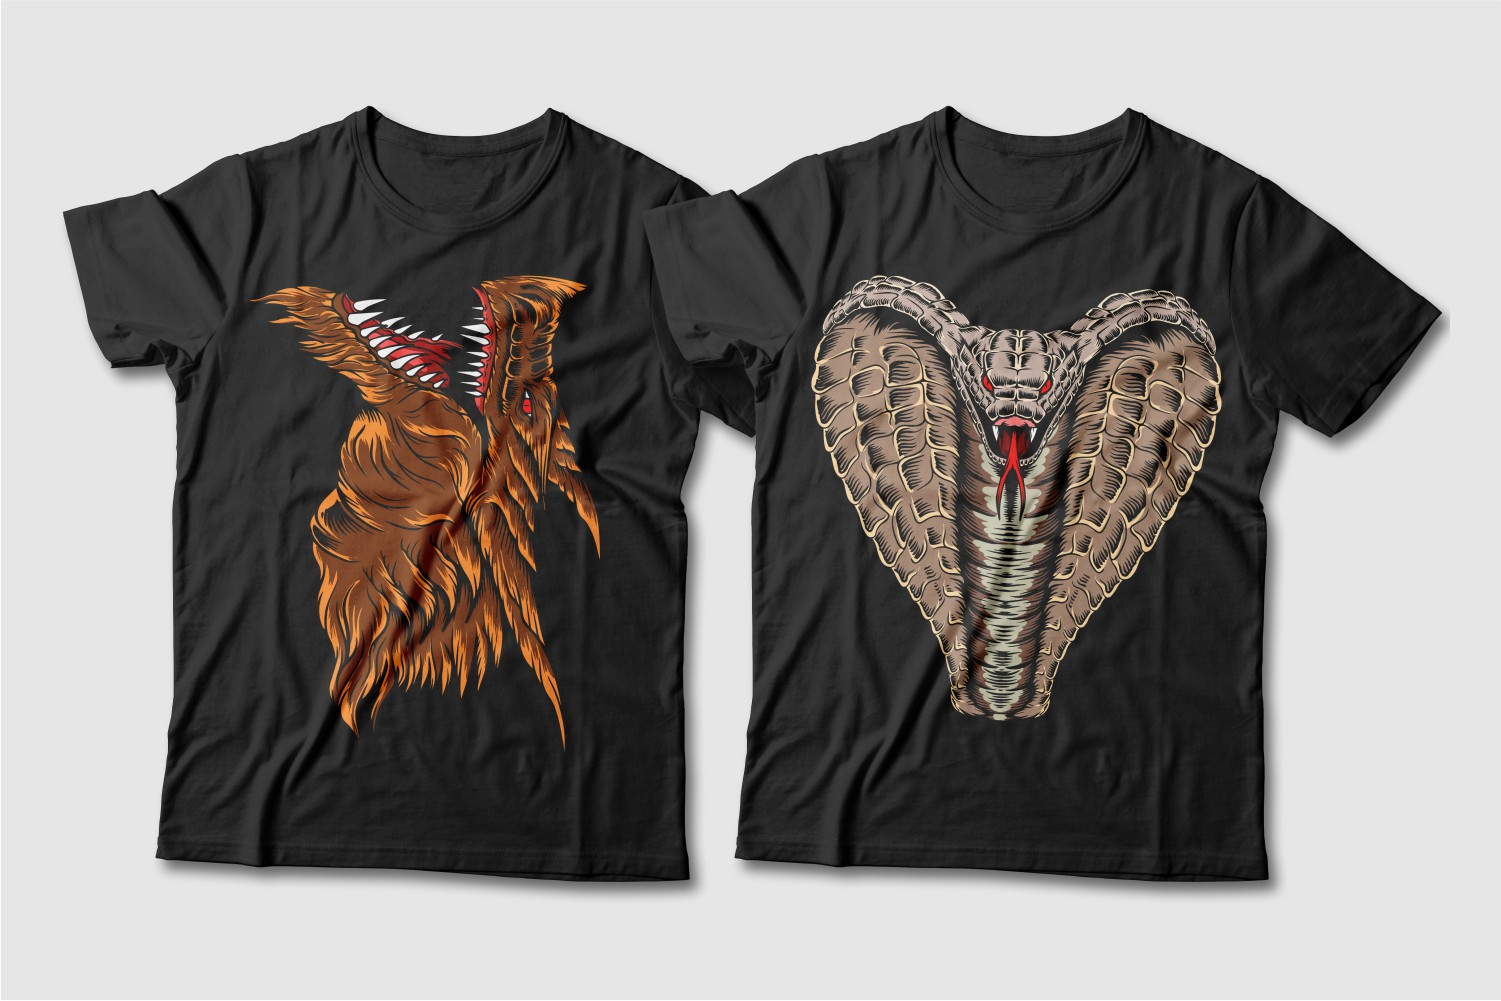 Black T-shirts featuring a brown dragon and a beige cobra.